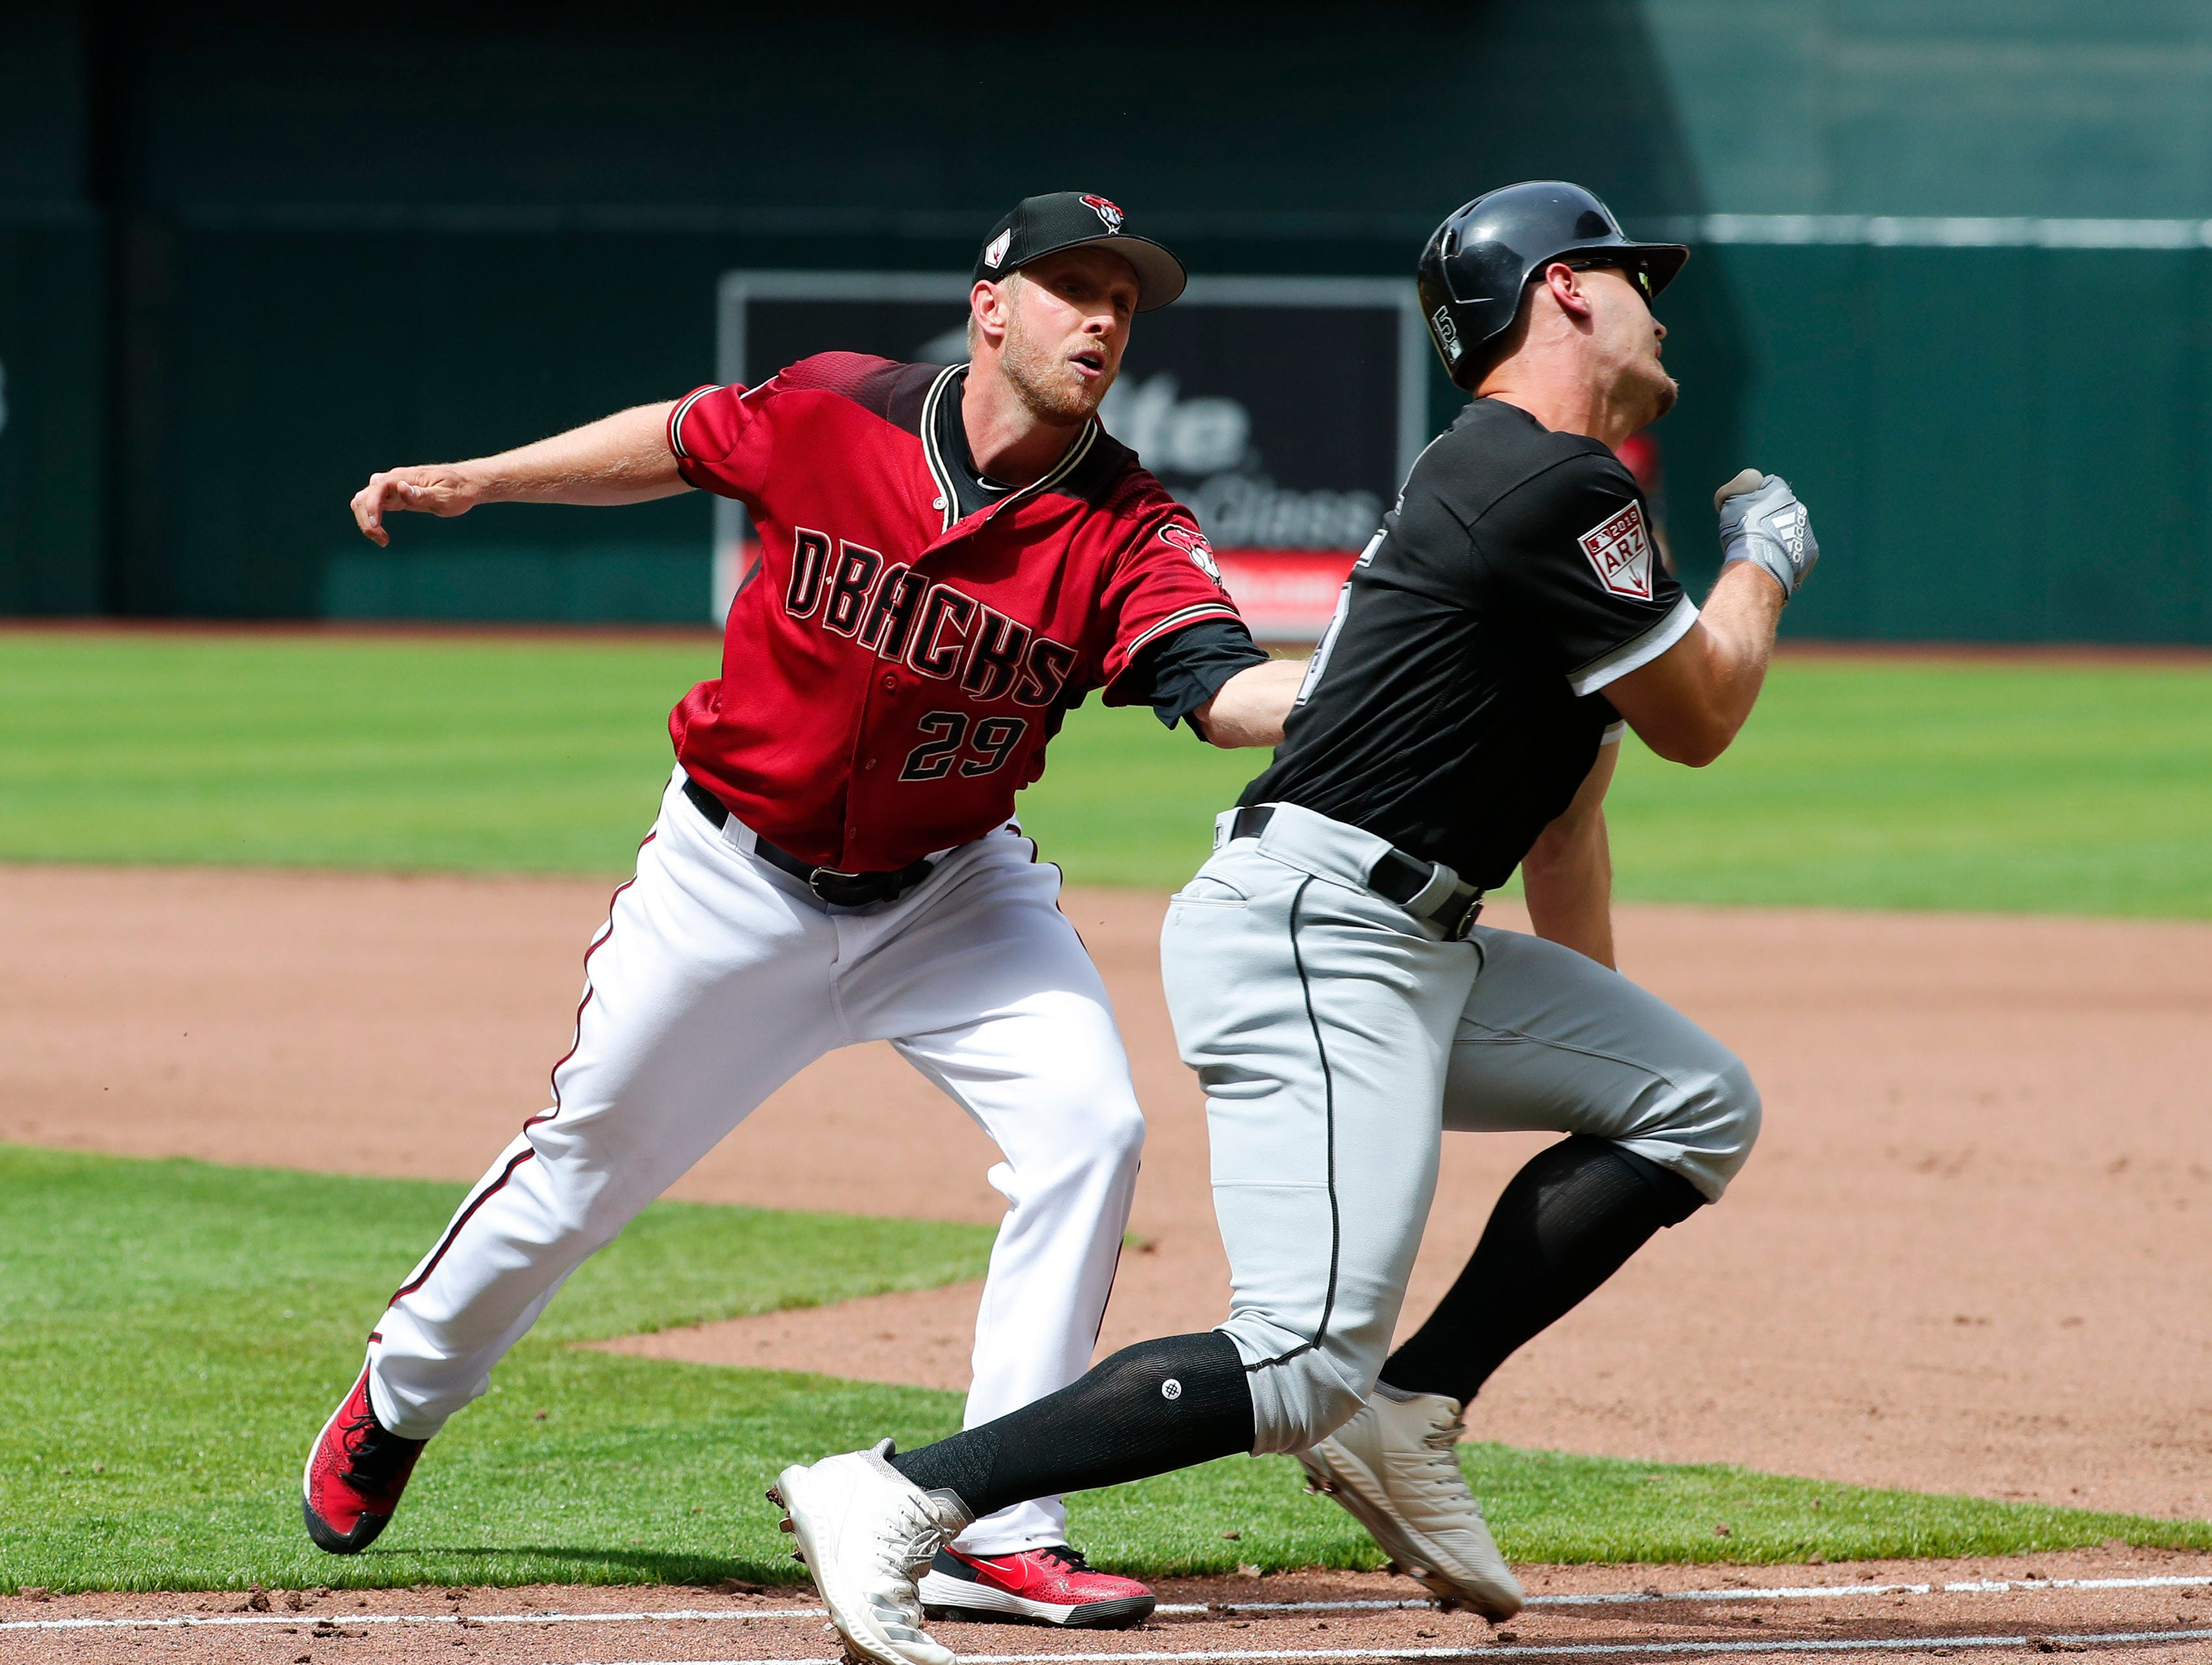 Arizona Diamondbacks starting pitcher Merrill Kelly (29) tags out Chicago White Sox base runner Adam Engel (15) during spring training action at Chase Field March 26, 2019.